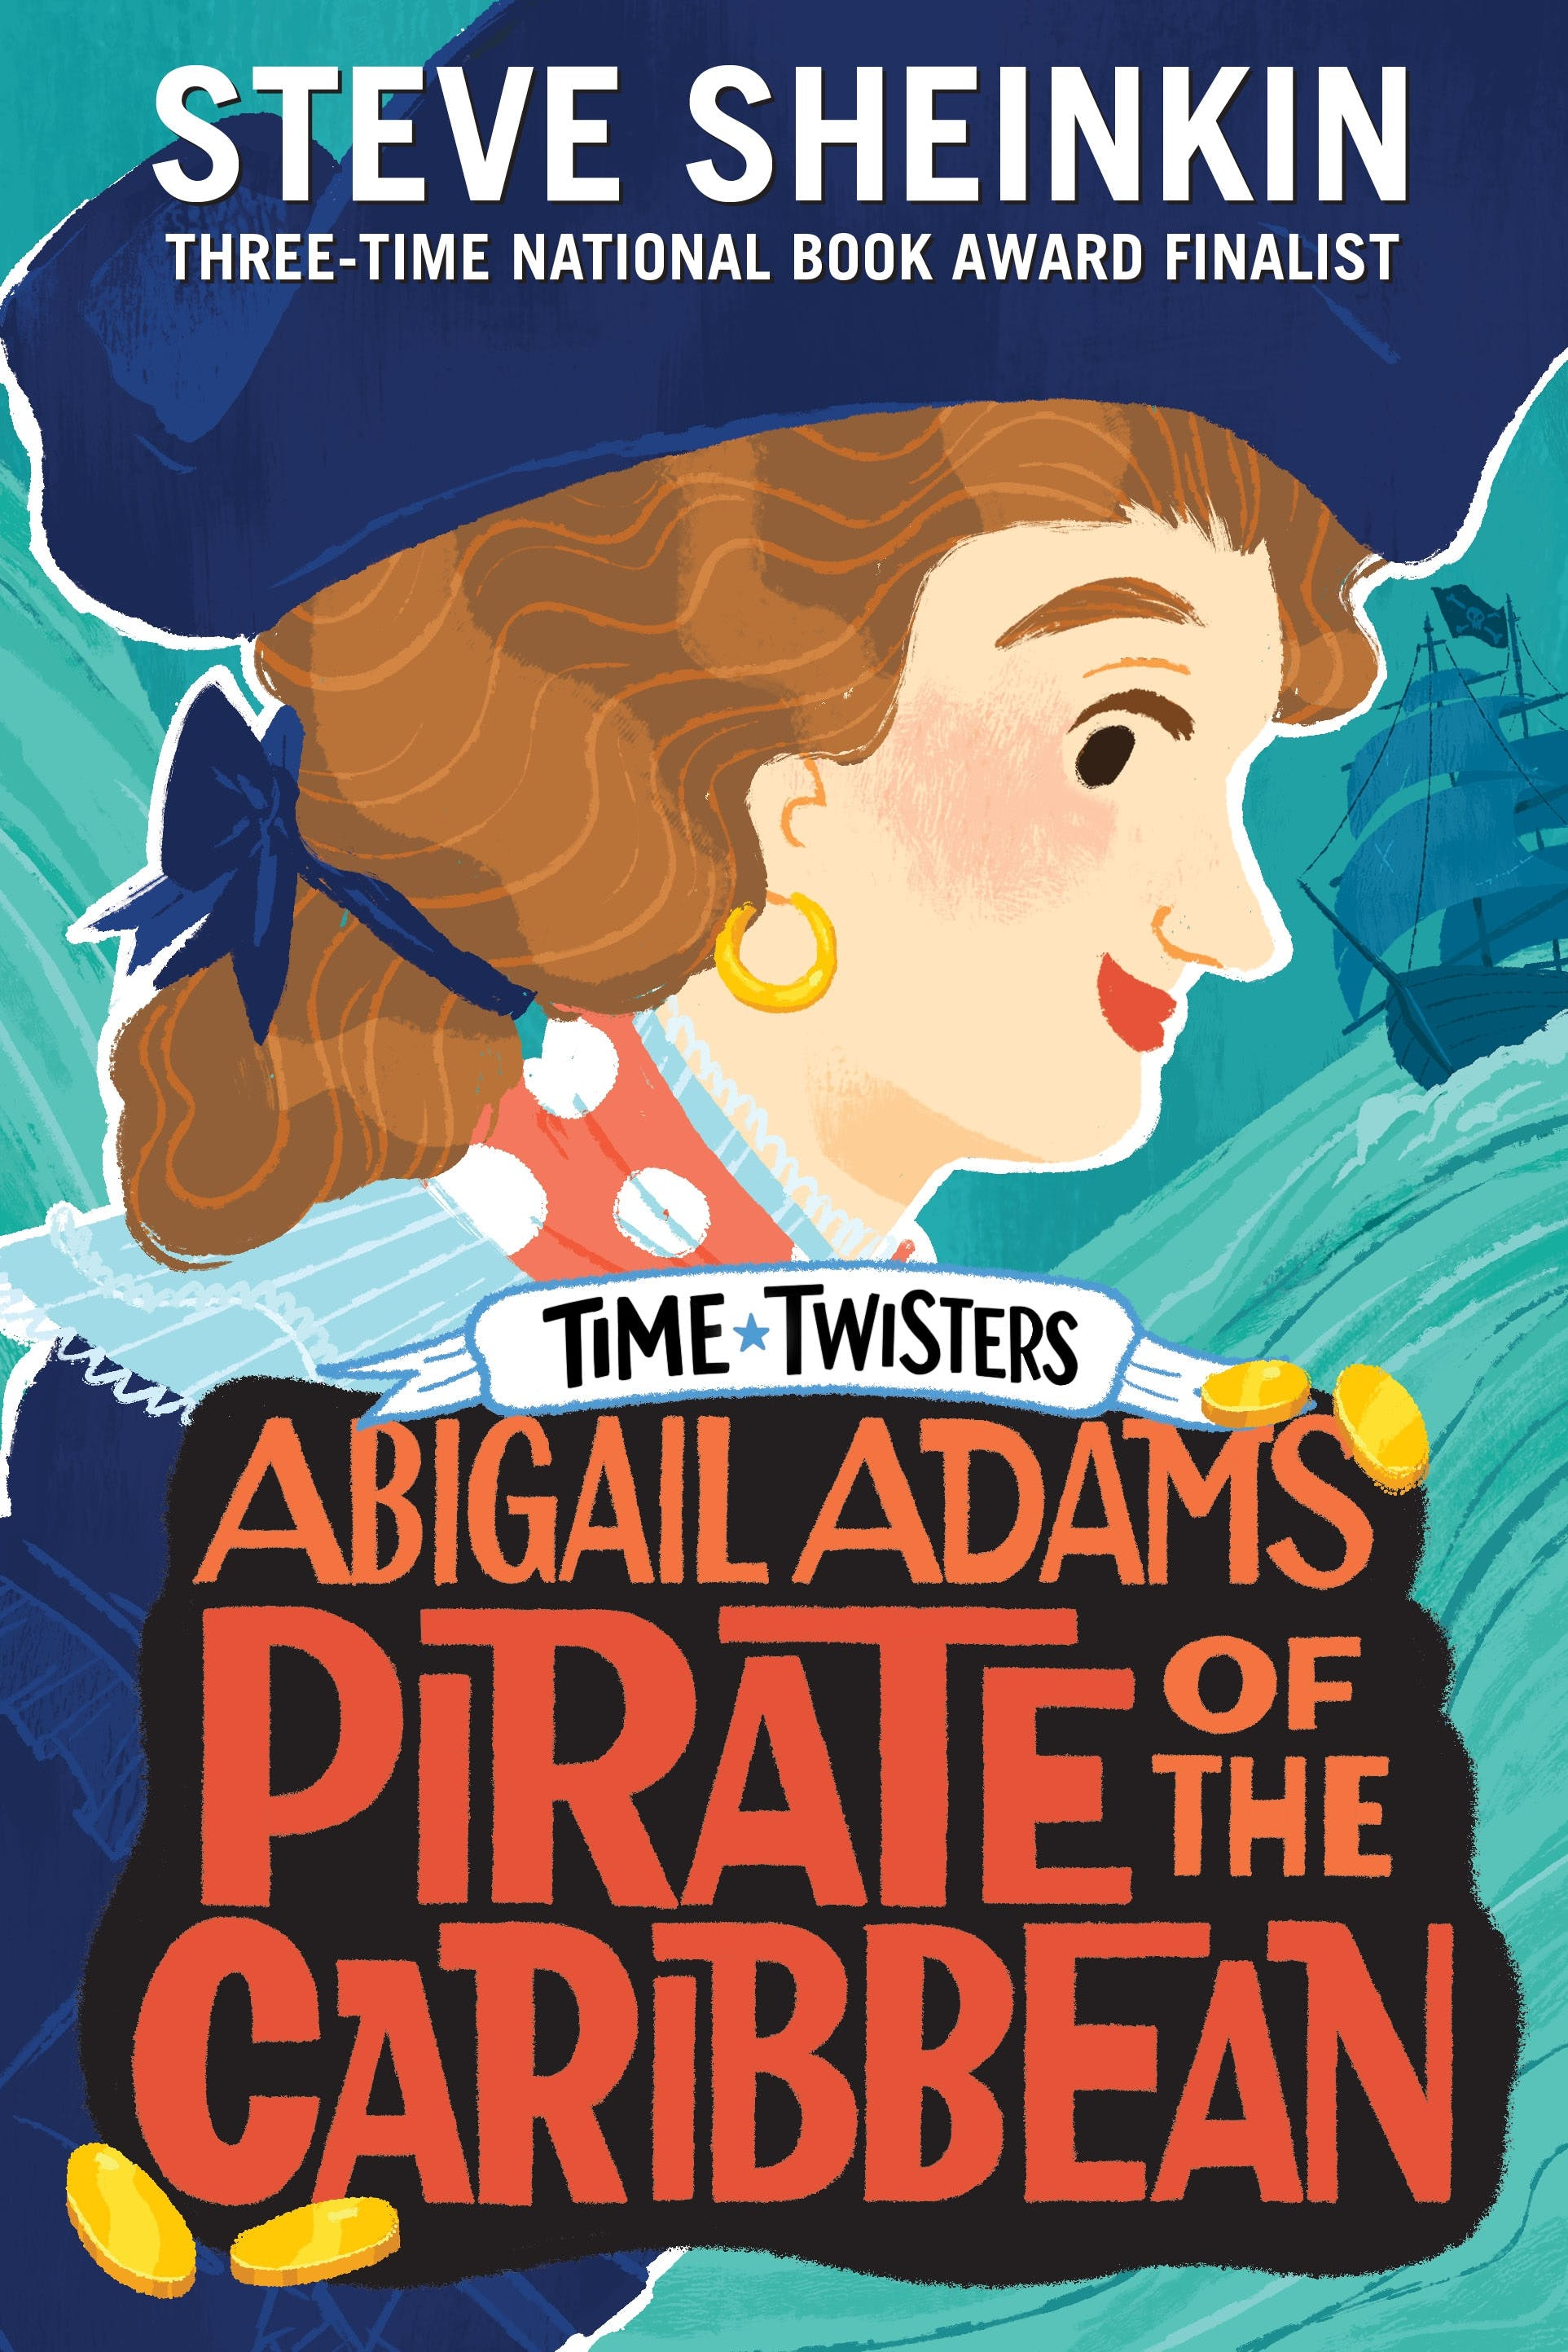 Image of Abigail Adams, Pirate of the Caribbean